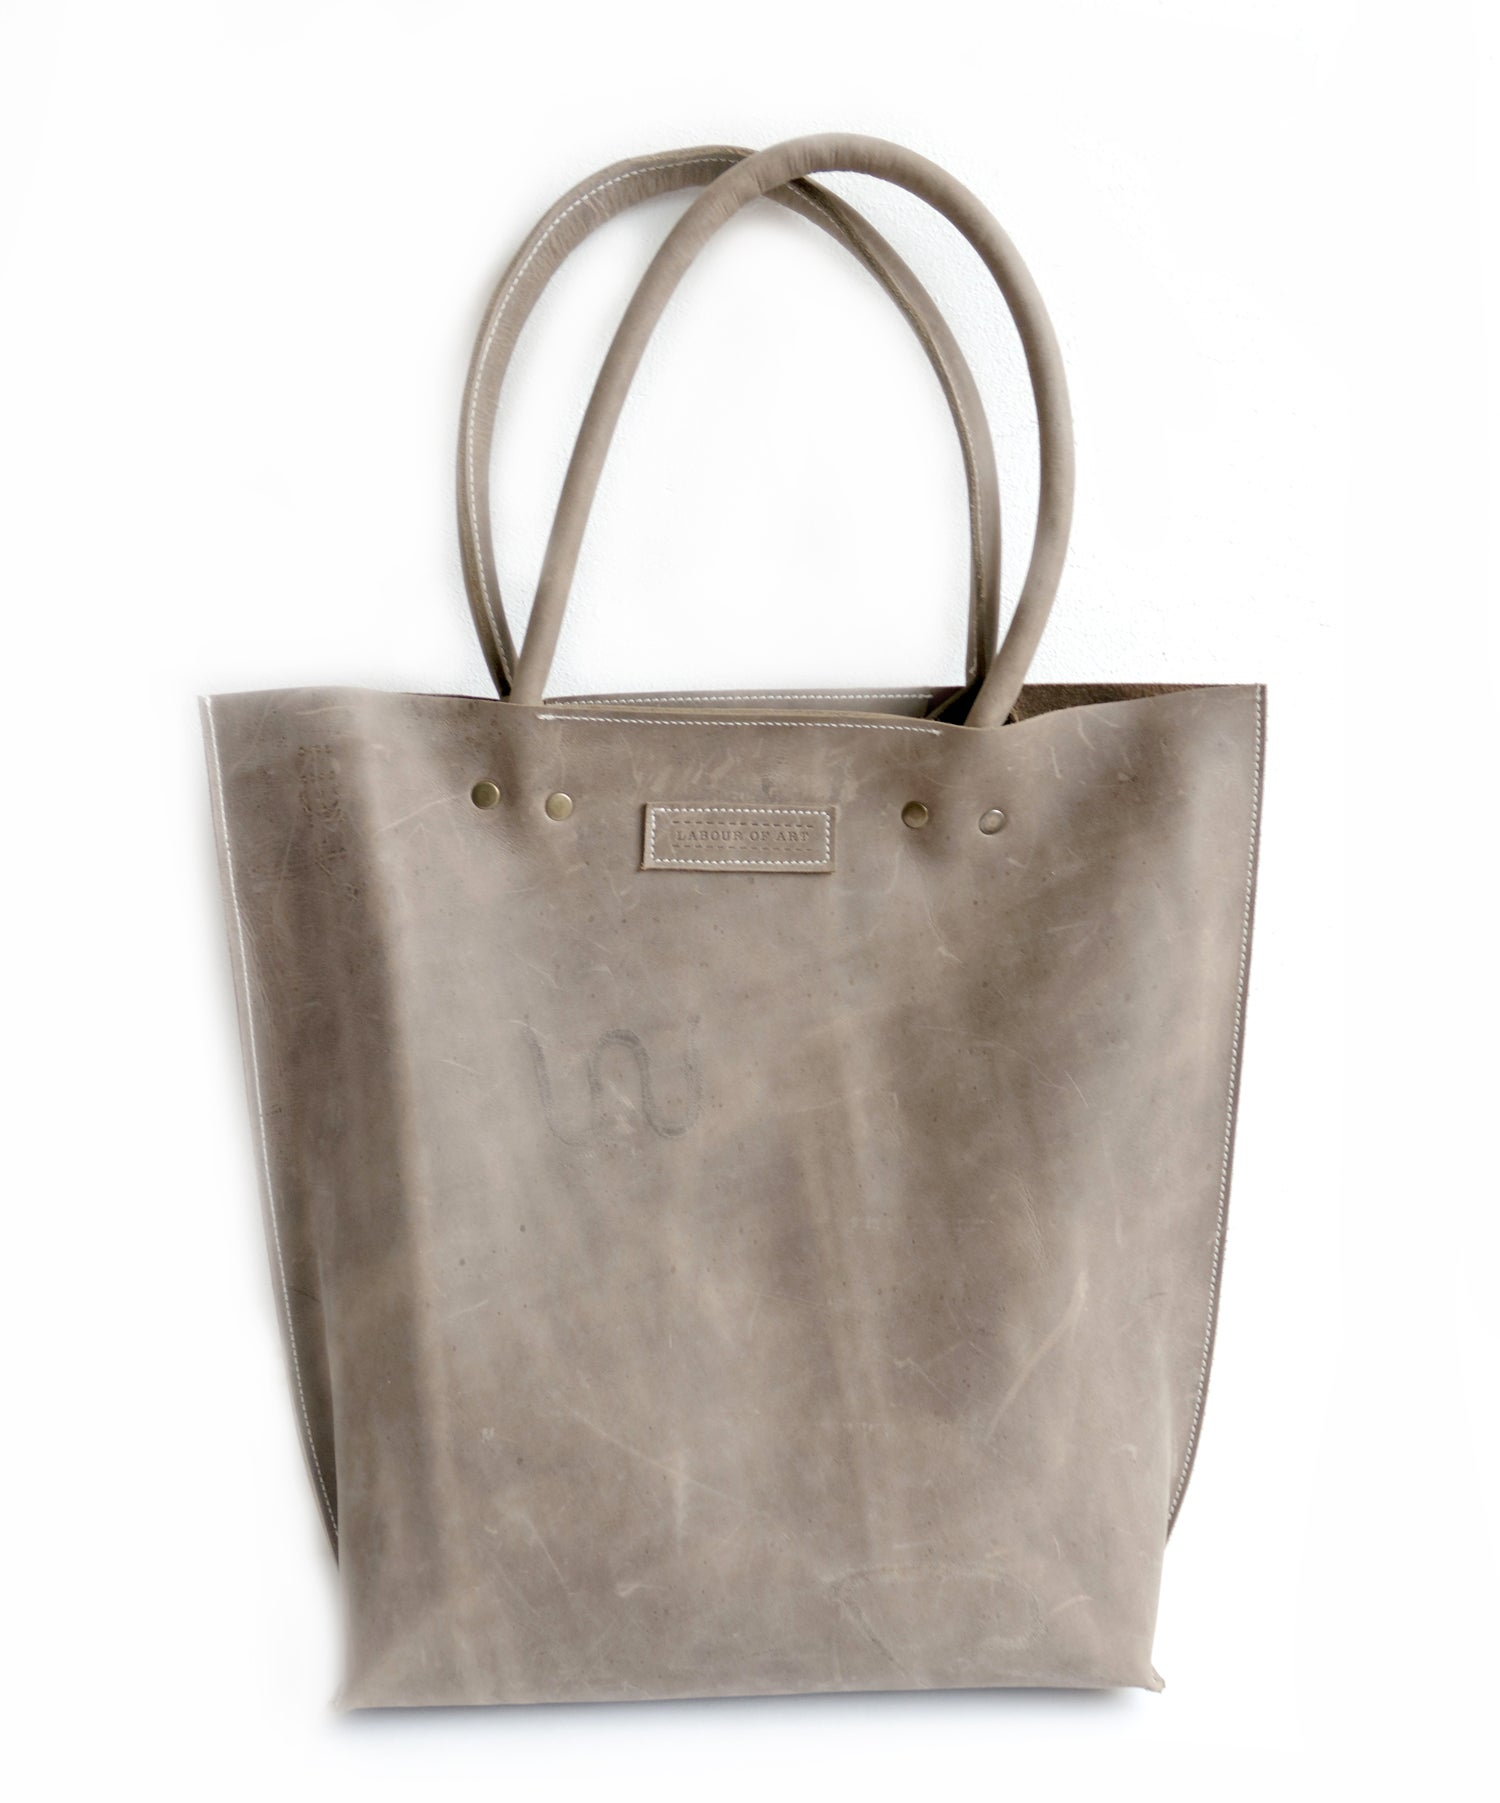 Image of Slate Wax Tanned Leather Shopper